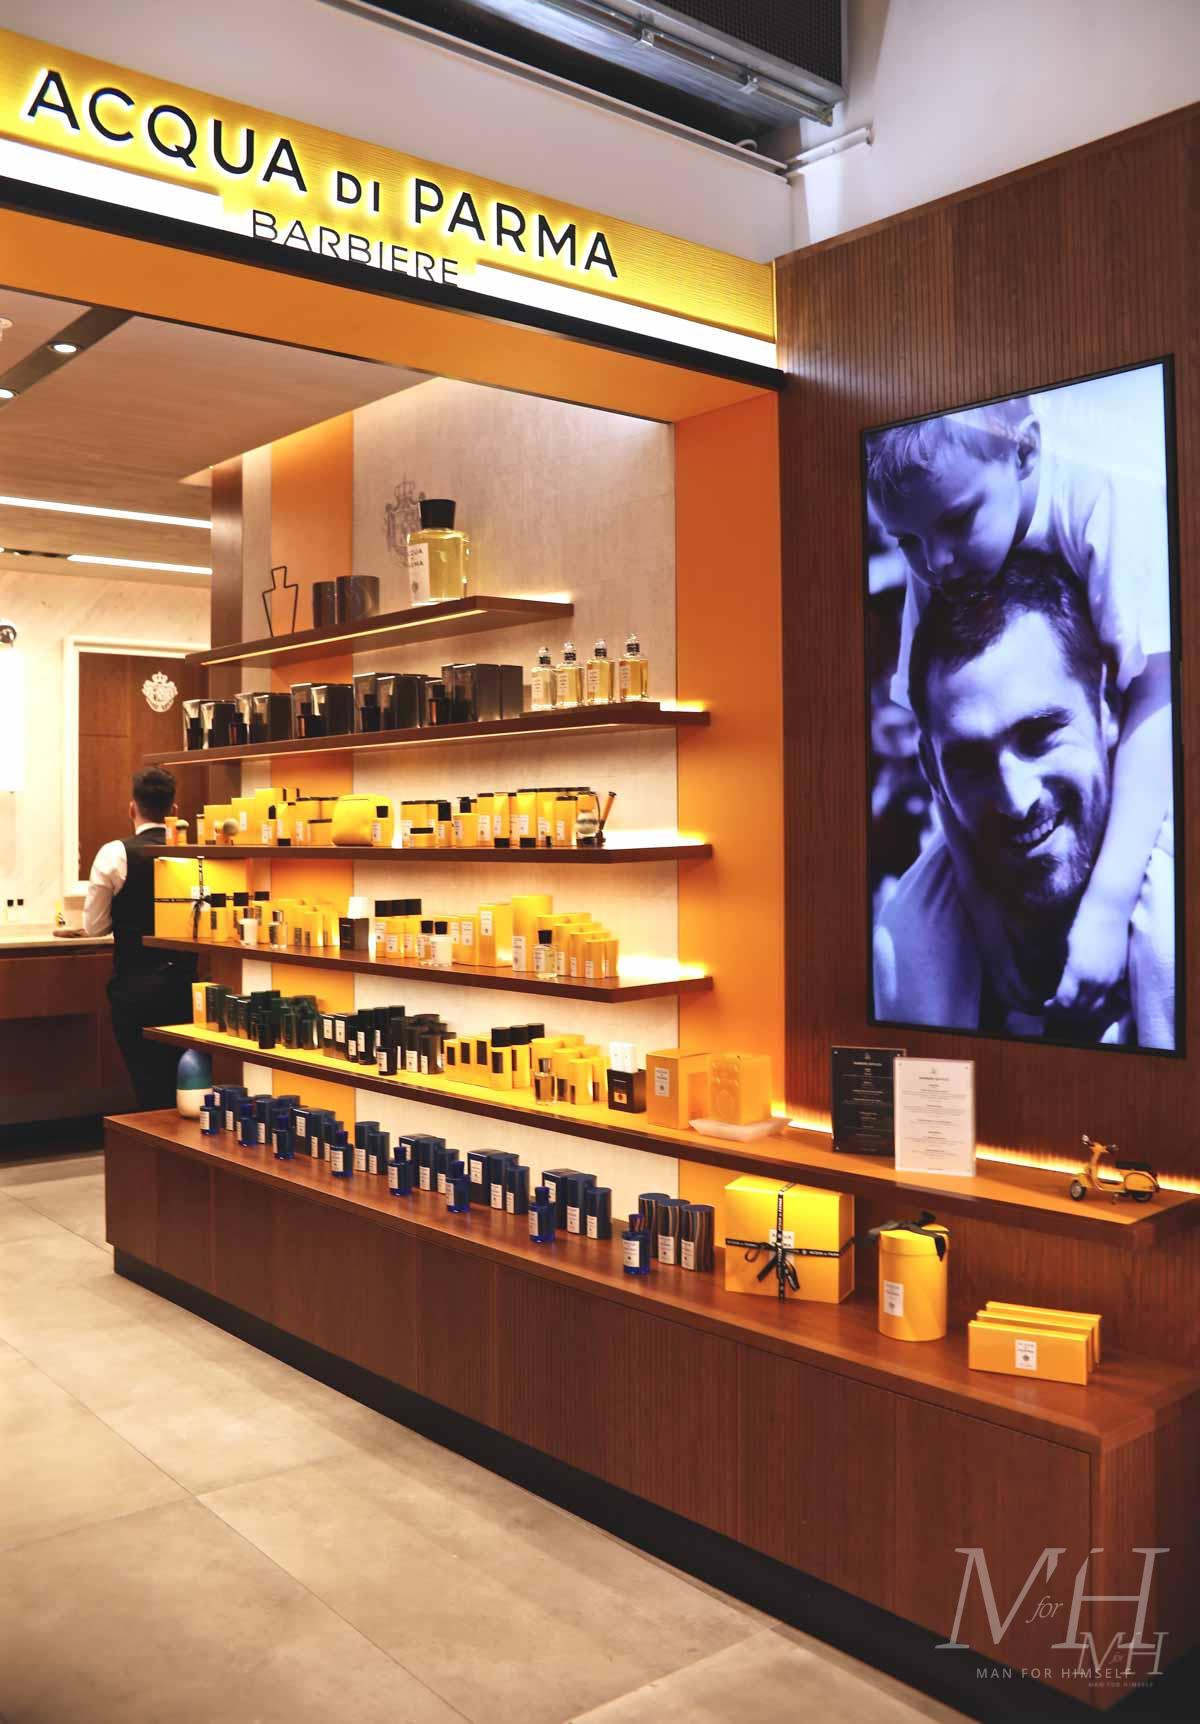 acqua-di-parma-uk-barbershop-man-for-himself-1